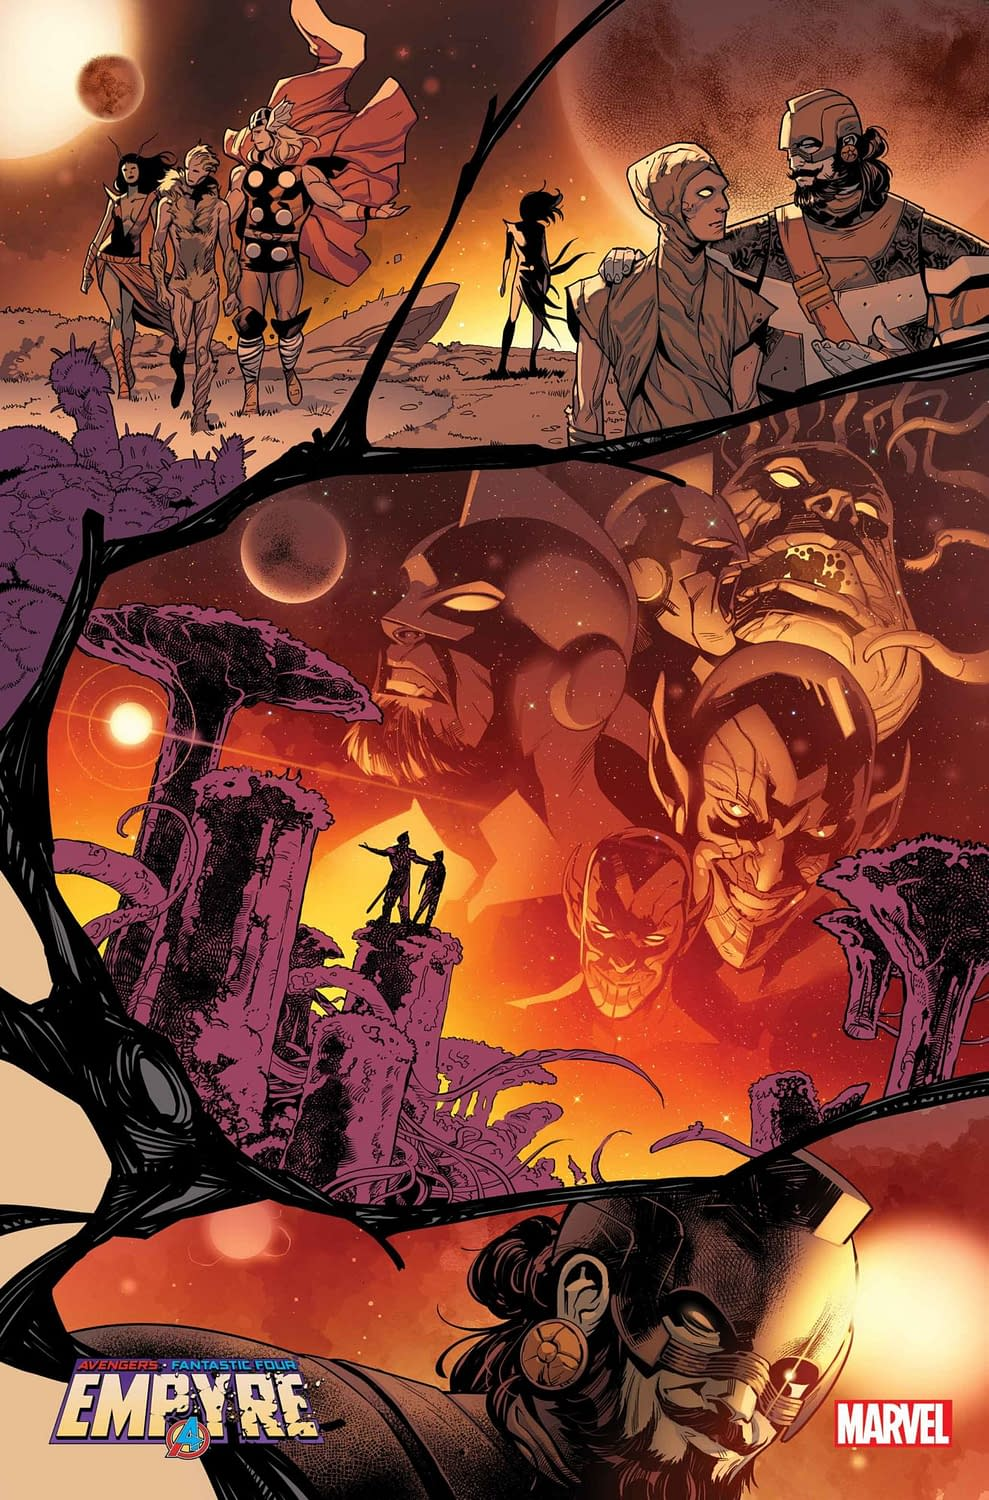 5 Pages of Interior Art from Marvel's Empyre #2